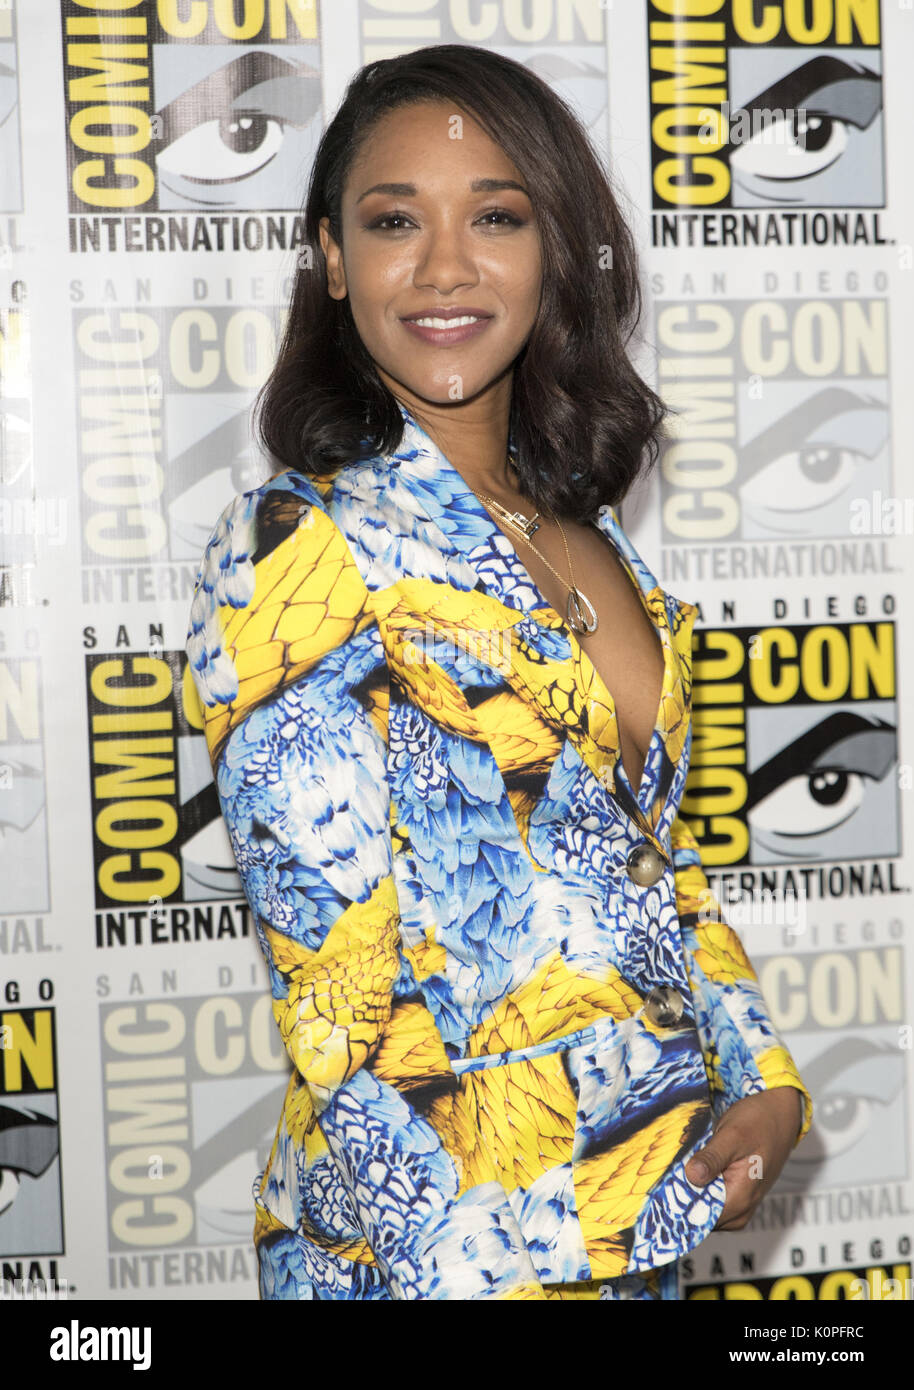 San Diego Comic Con 2017 Flash Photocall Featuring Candice Patton Donde San Diego California Estados Unidos Cuándo 22 Jul 2017 Crédito Eugene Poderes Wenn Com Fotografía De Stock Alamy